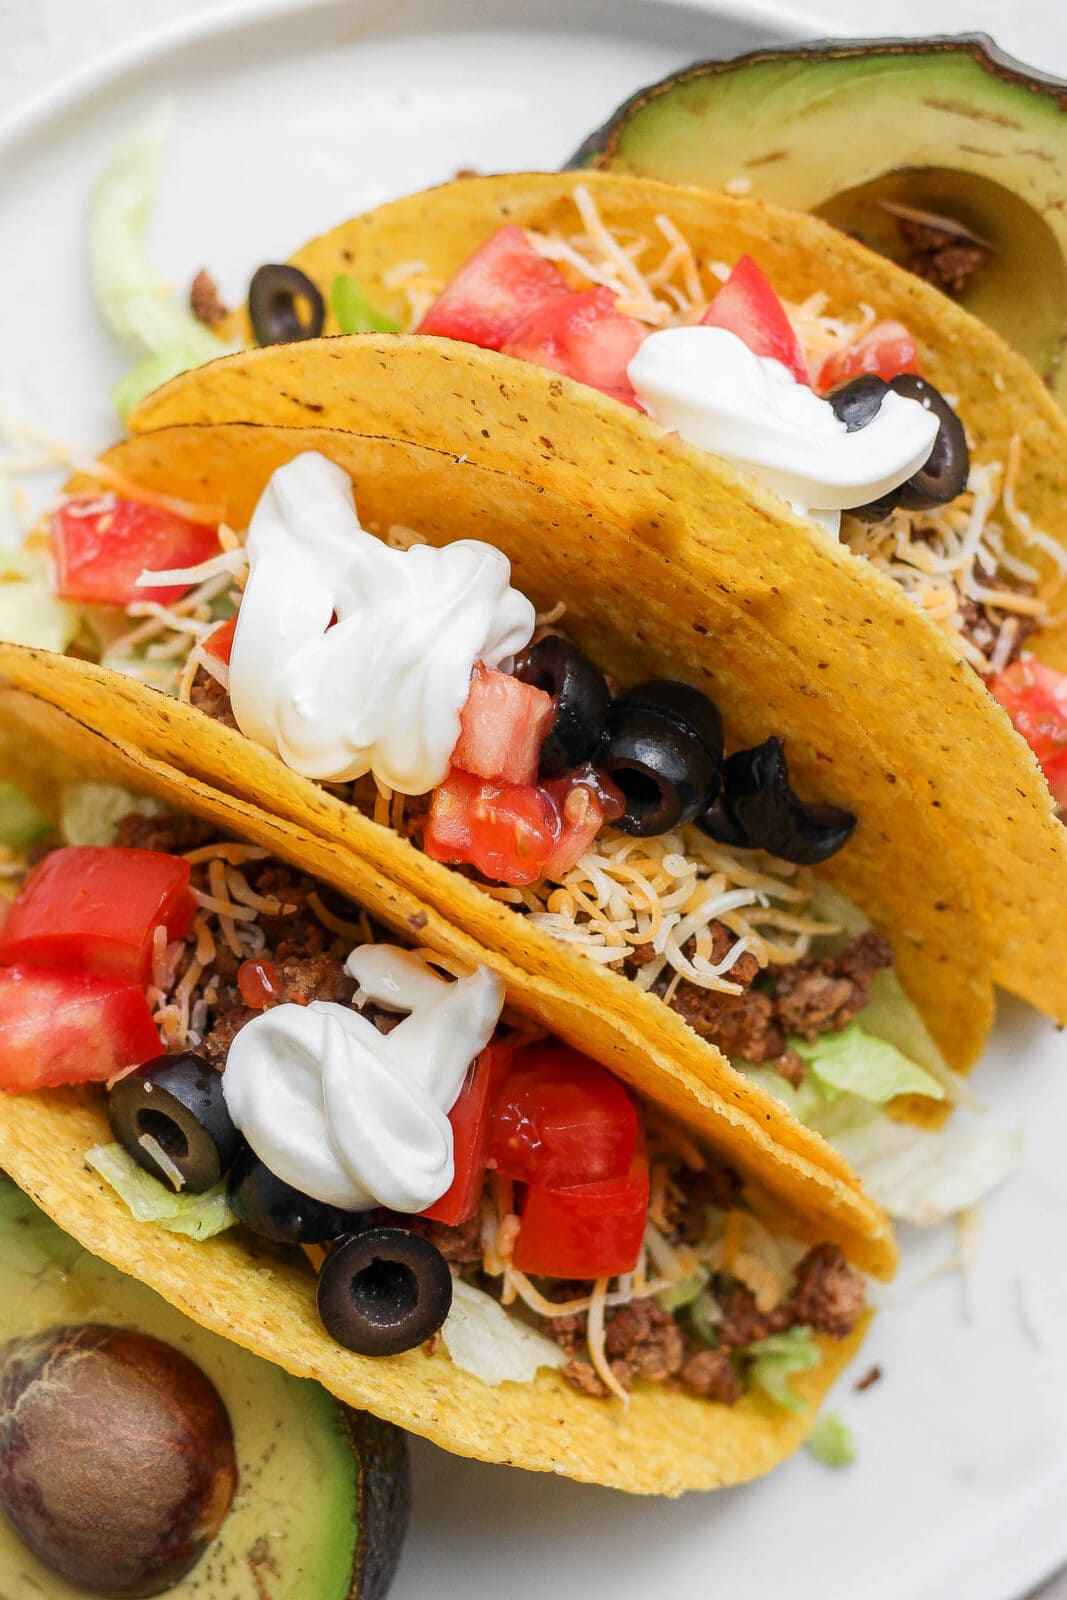 Plate with 3 homemade tacos in hard shells.